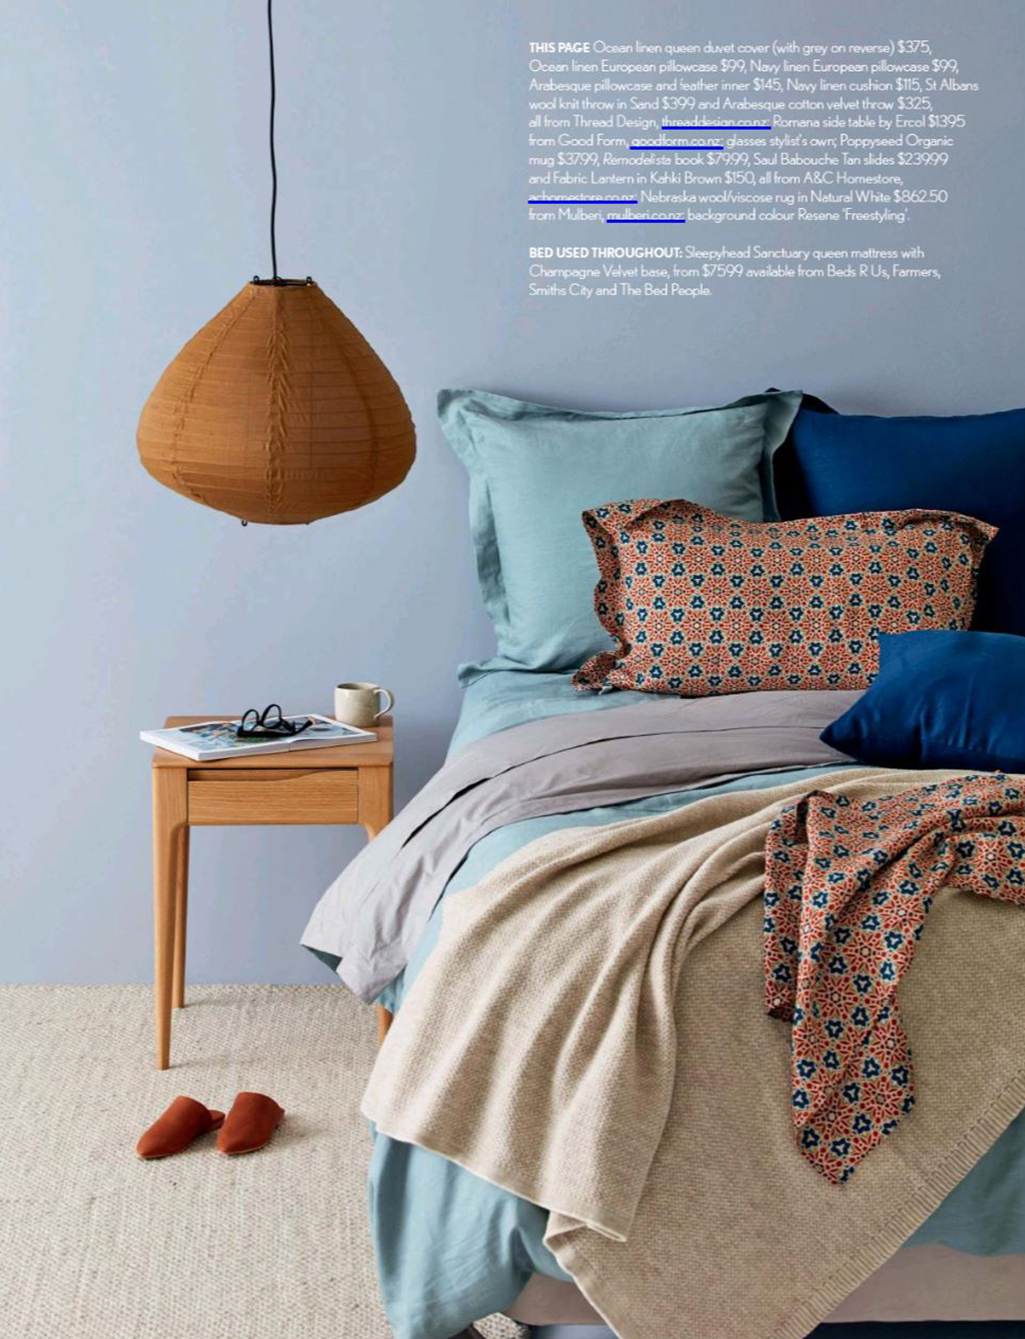 Good Form featured in 'Take to Your Bed' NZ House & Garden Special Feature